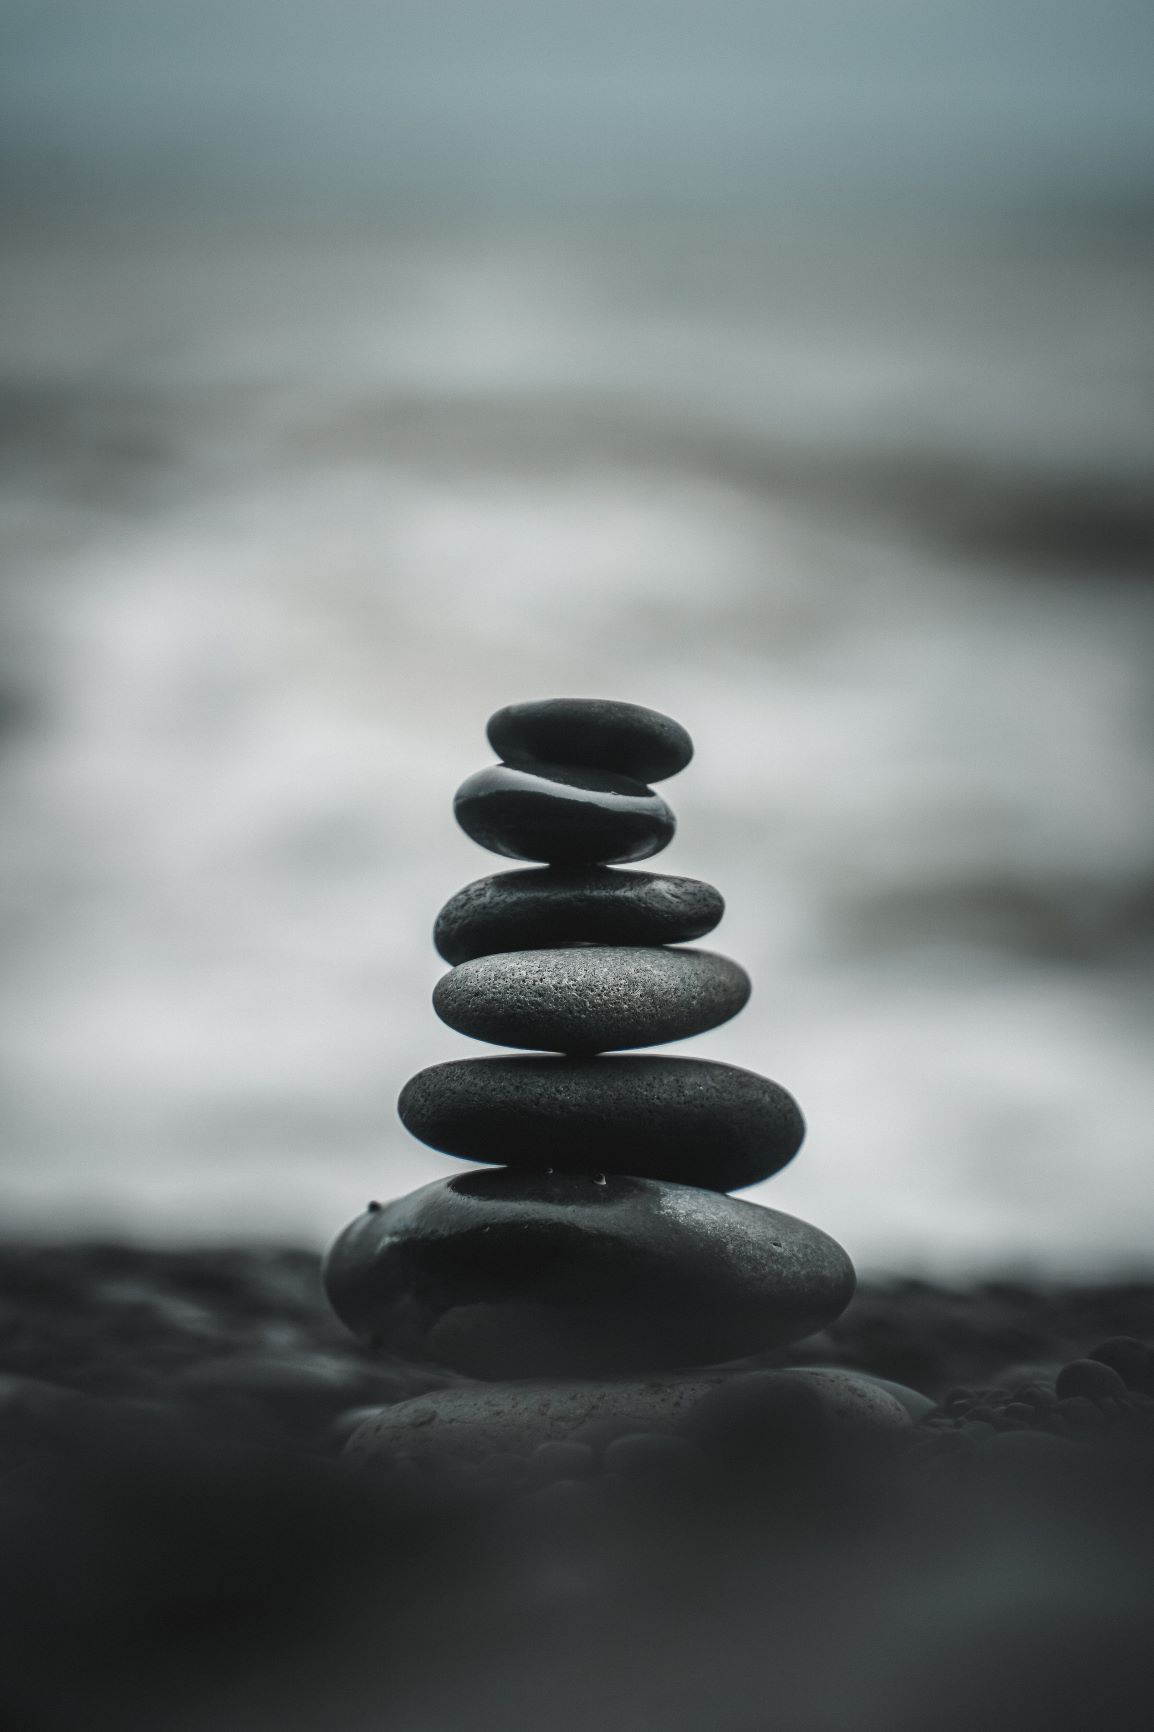 Reiki Level 1 - A Two-Day Course - 21st & 22nd September, 201910am to 4:30pm€220 Early Bird/€250 Normally